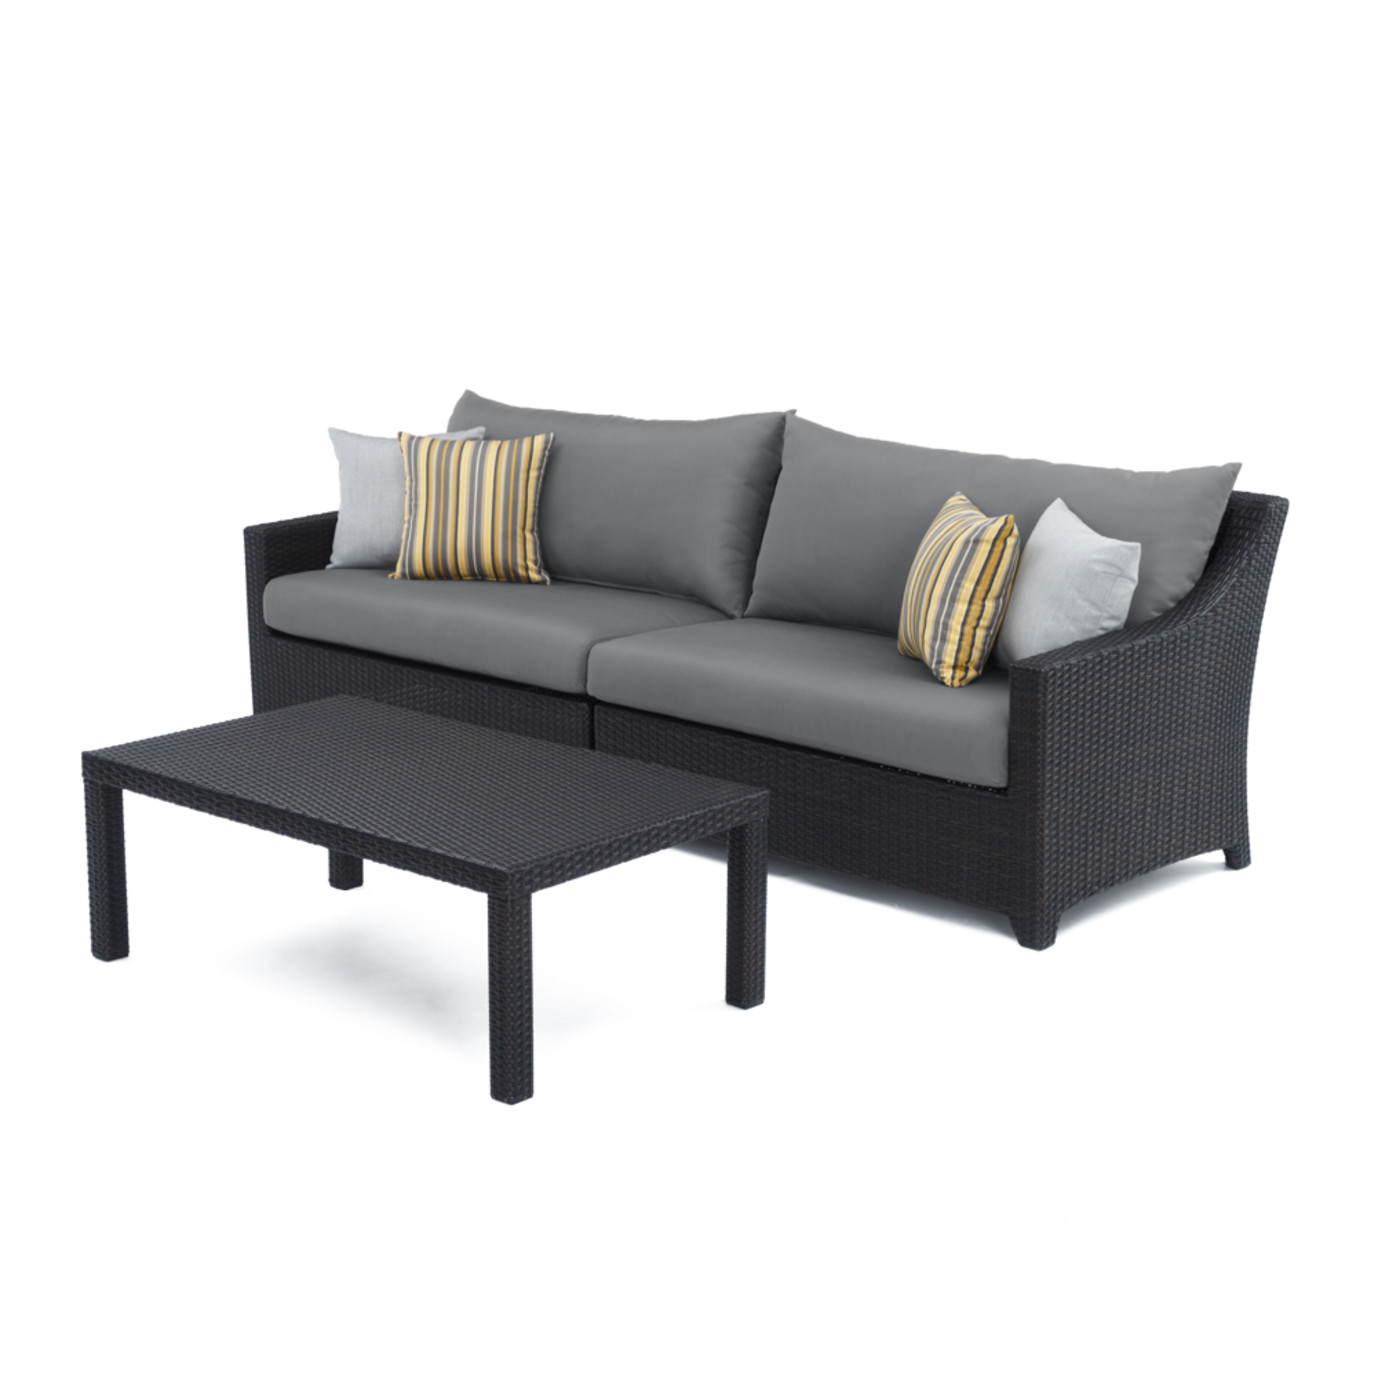 Deco™ Sofa with Coffee Table - Charcoal Grey